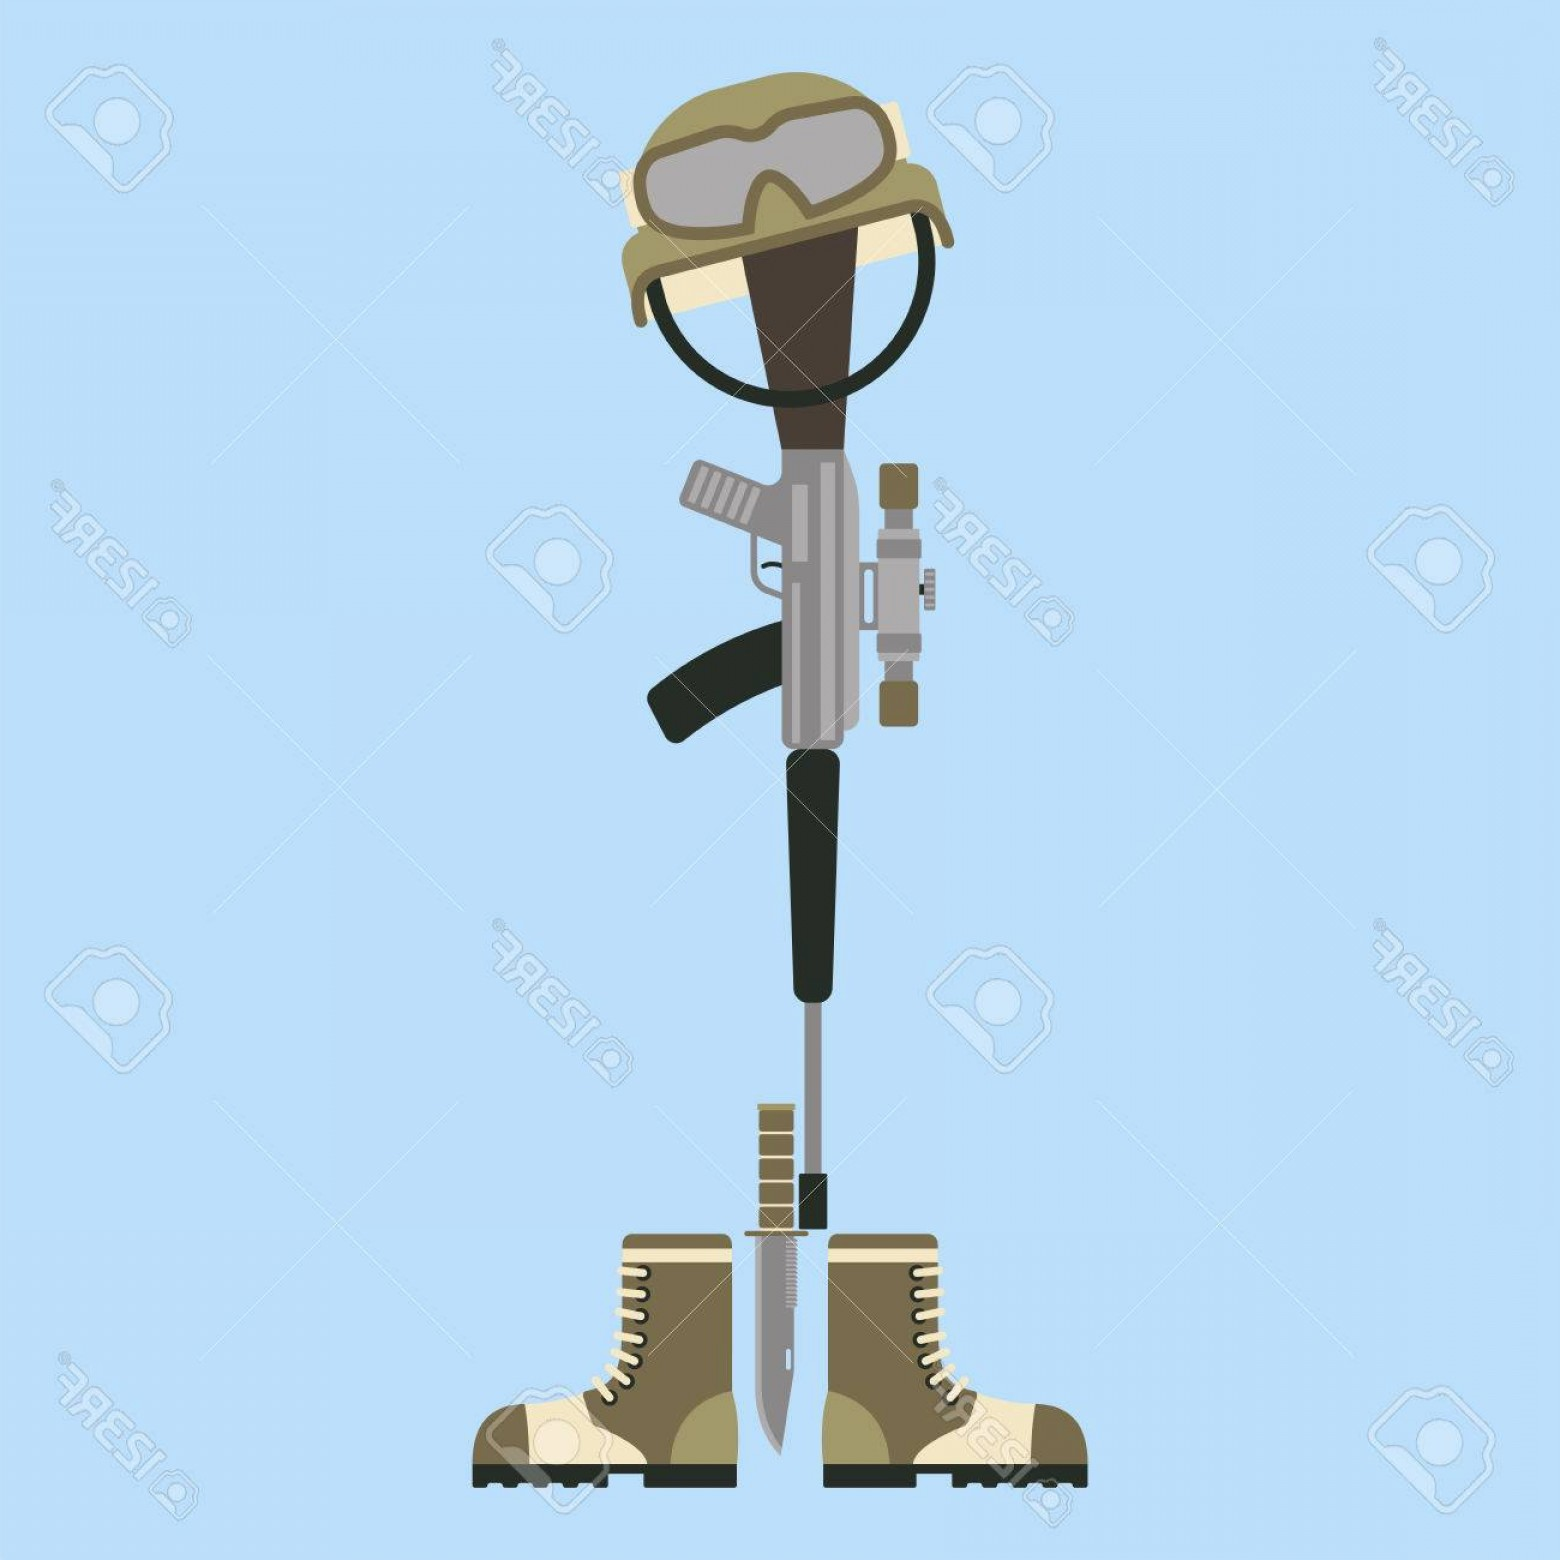 Vector Rifle And Boots: Photostock Vector Memorial Battlefield Cross American Honor Symbol Of A Fallen Us Soldier Modern War Rifle M With Bo